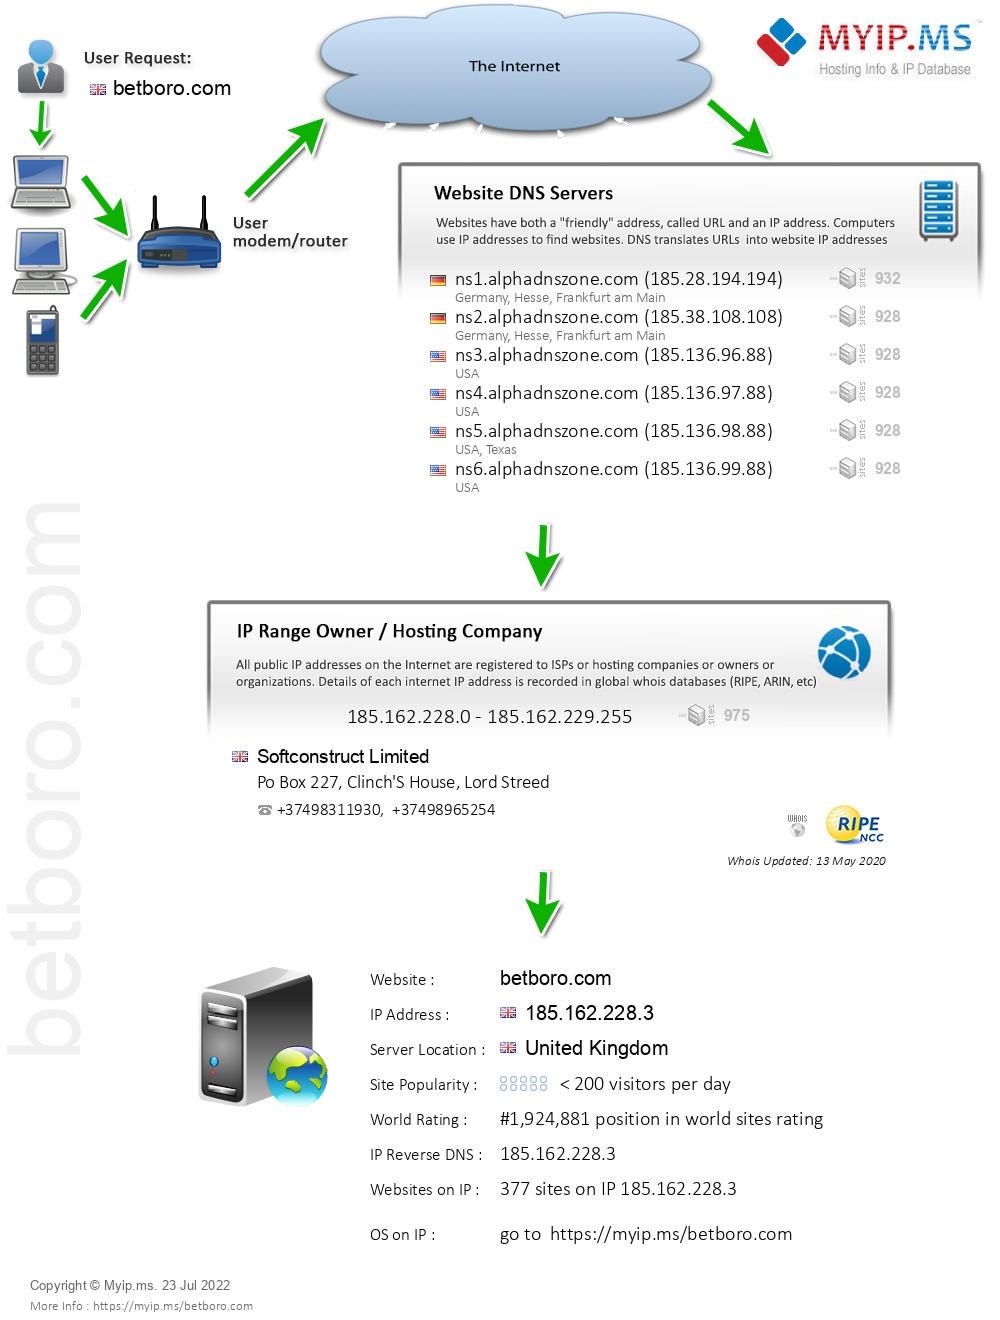 Betboro.com - Website Hosting Visual IP Diagram